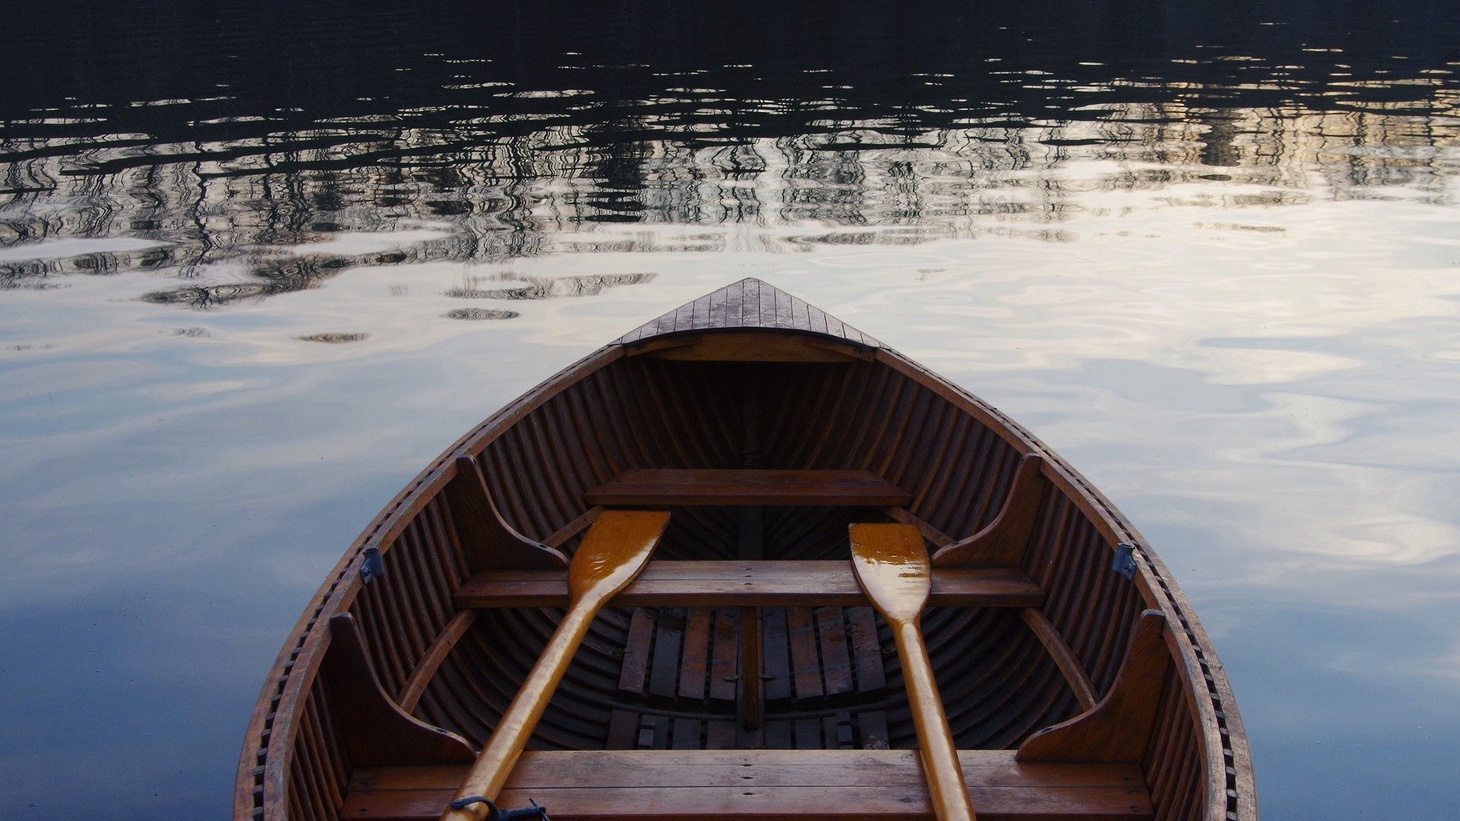 Boat on calm water.